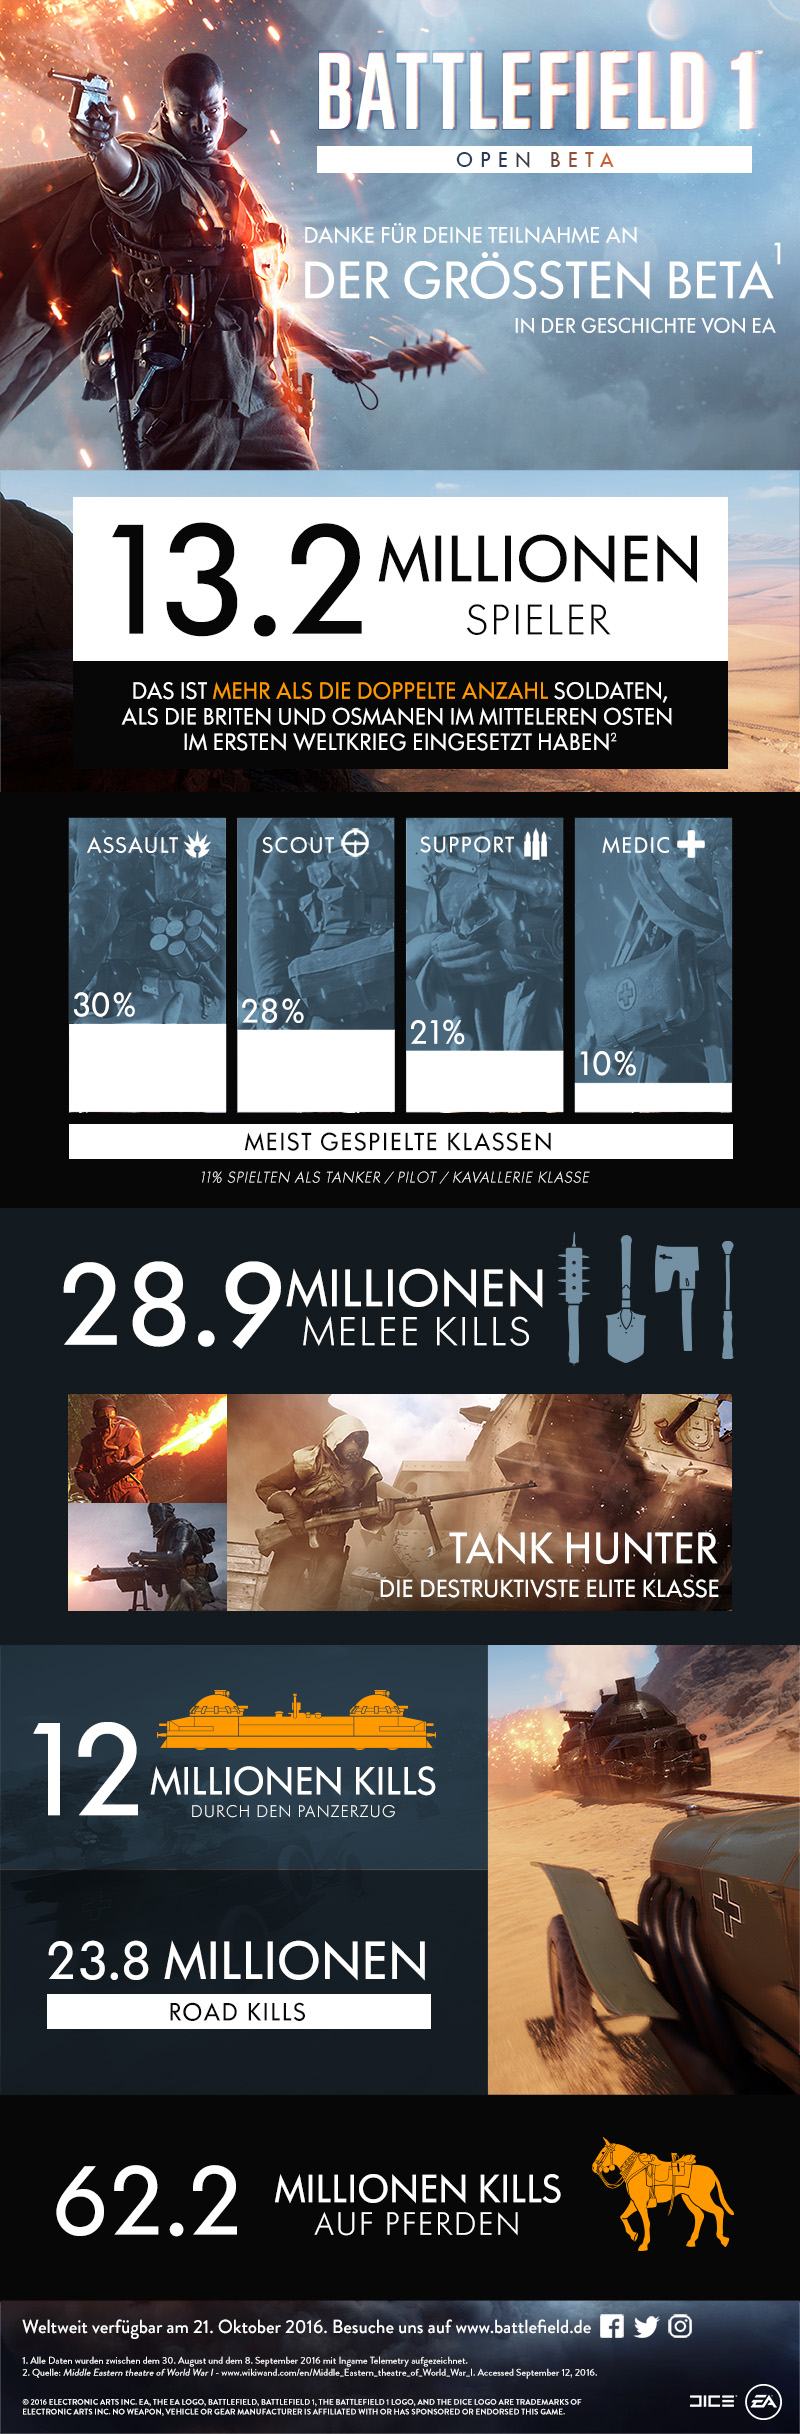 battlefield1_infografik_beta